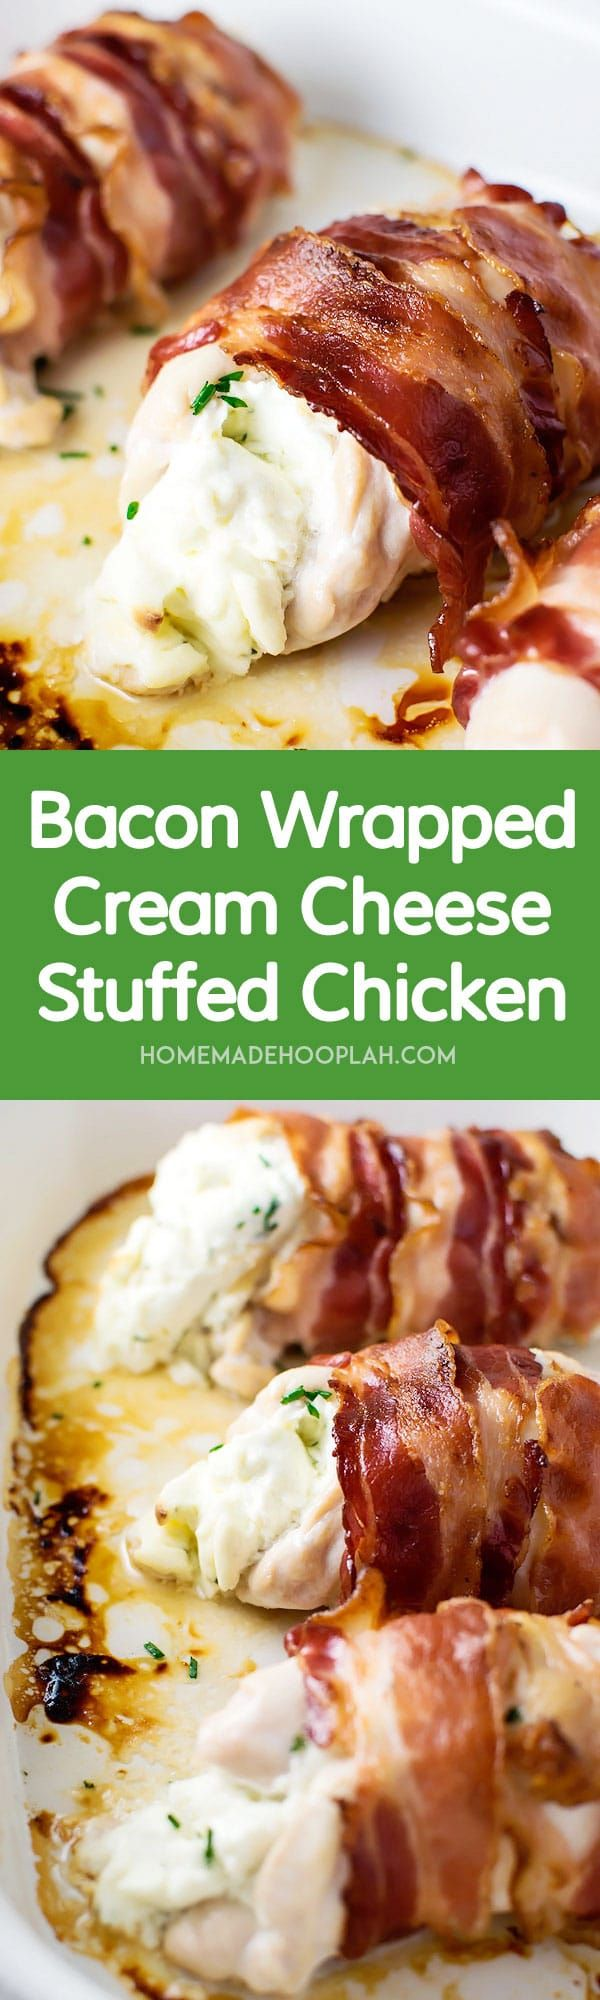 Bacon Wrapped Cream Cheese Stuffed Chicken! A base recipe for tender chicken breast stuffed with cream cheese and chives wrapped tightly within crispy bacon. Make it as written or add more flavors! | HomemadeHooplah.com